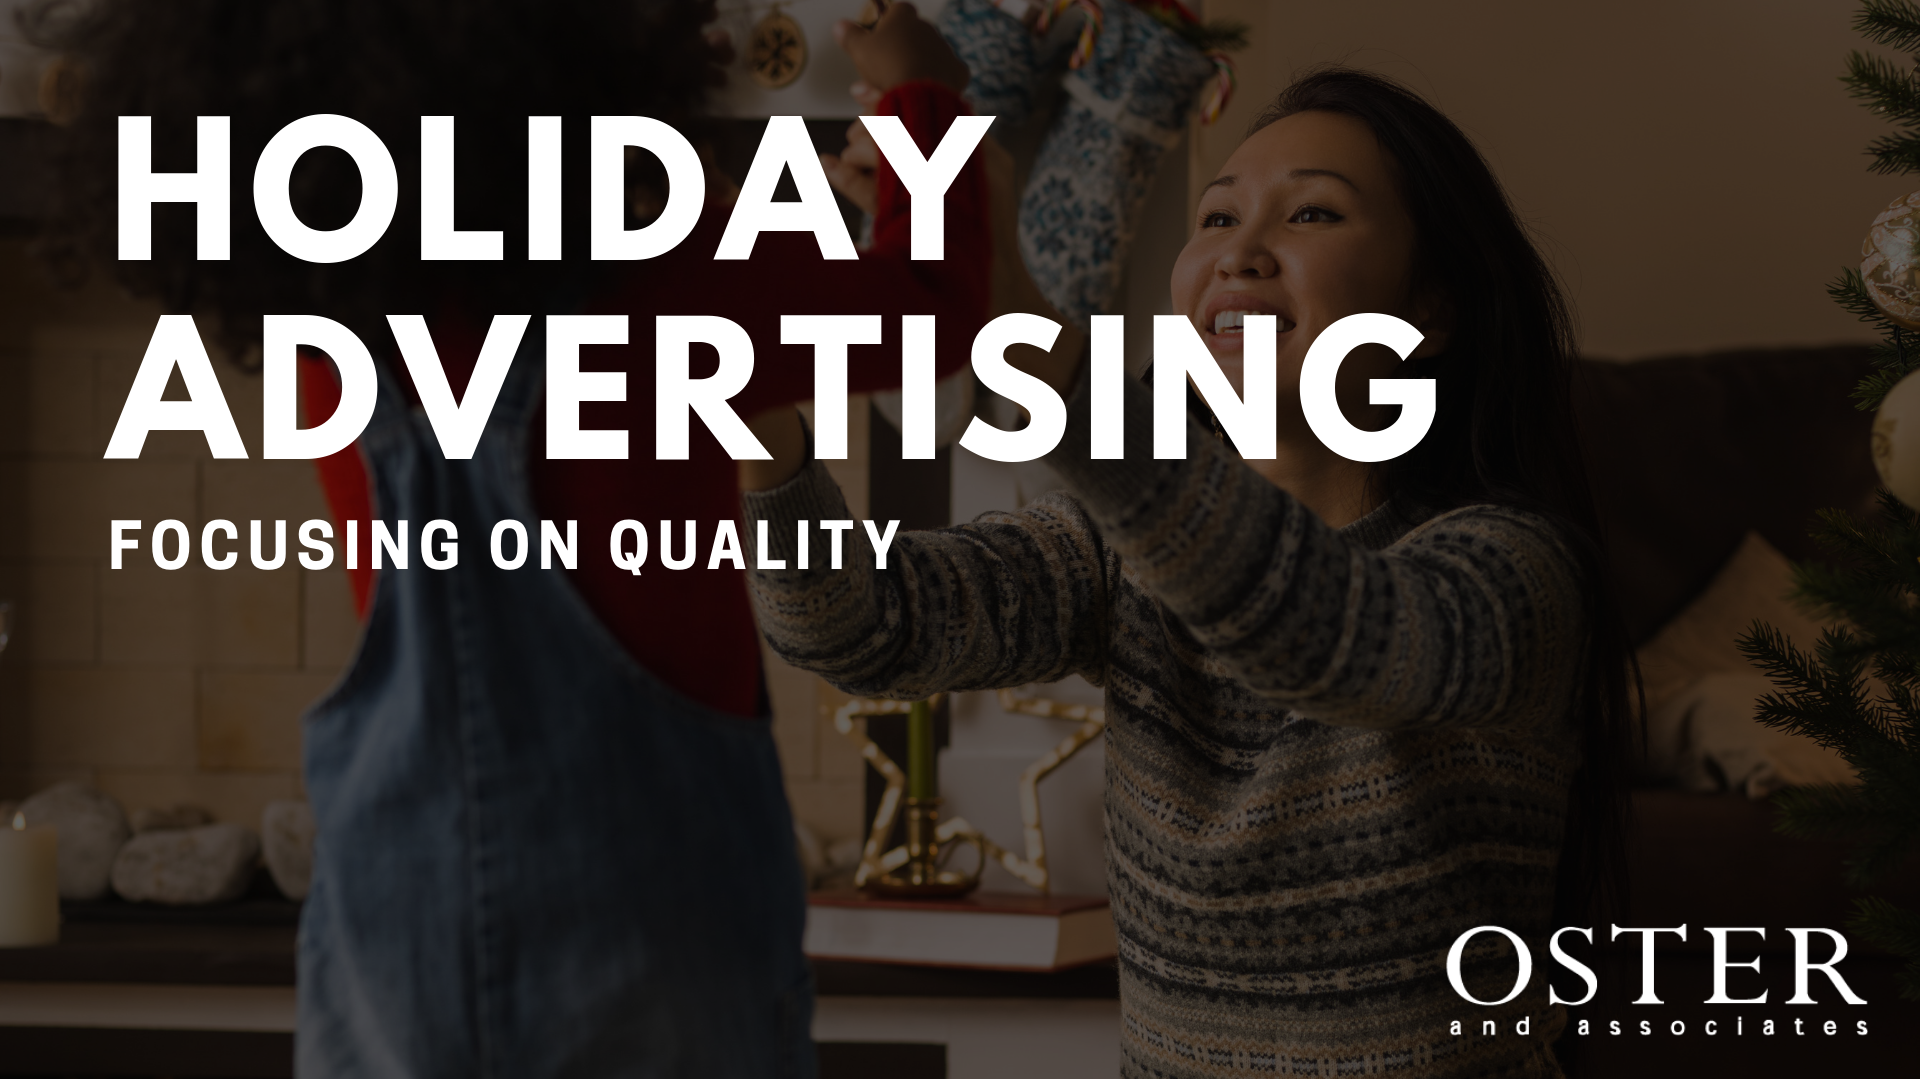 Holiday Advertising - Focusing on Quality